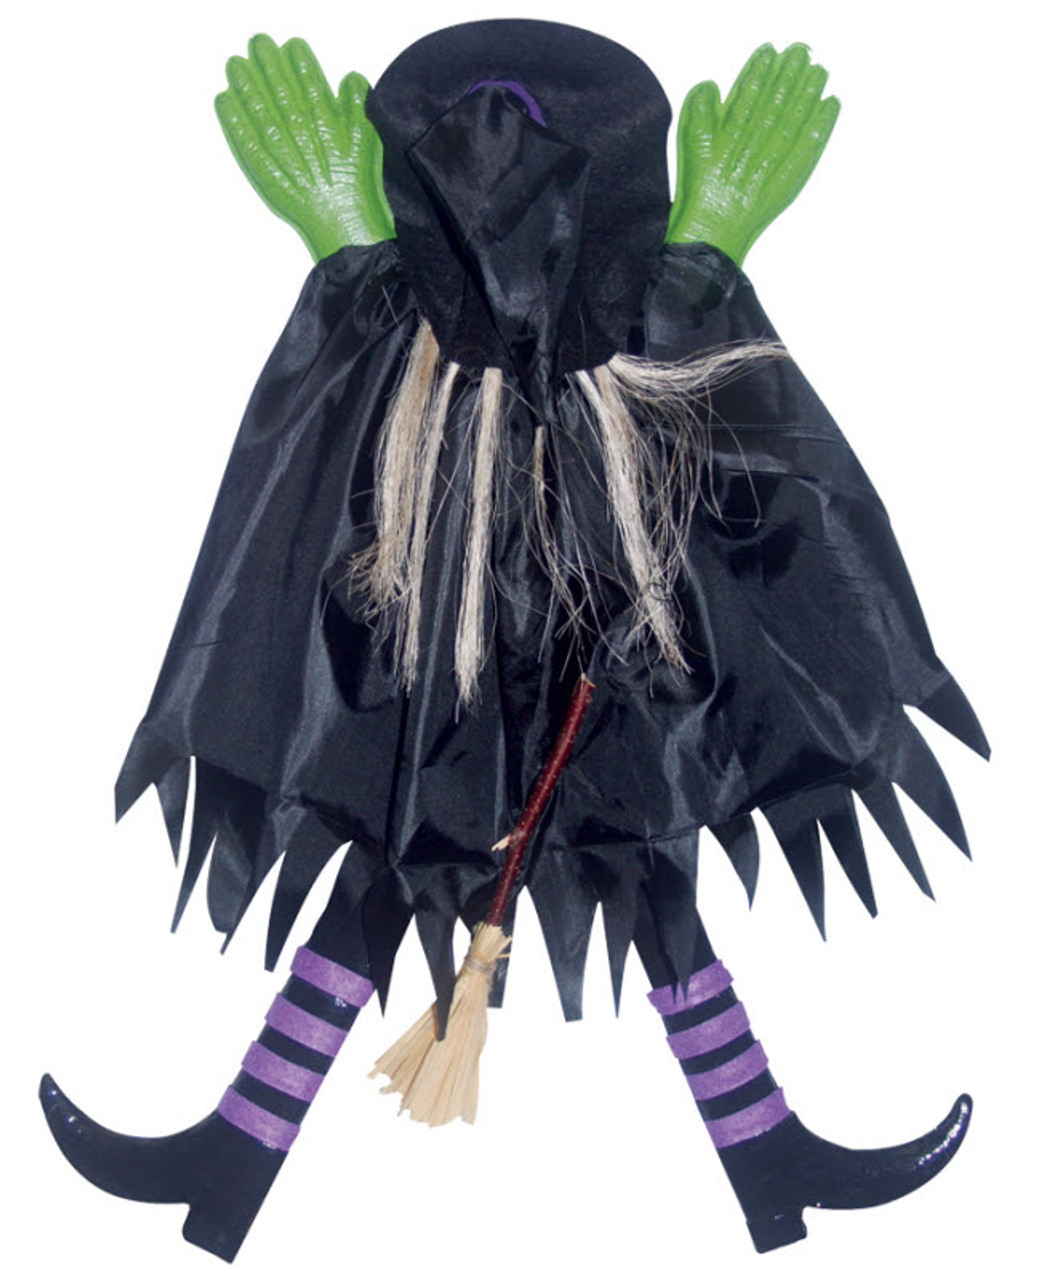 Crashed Witch Decoration - Halloween Express